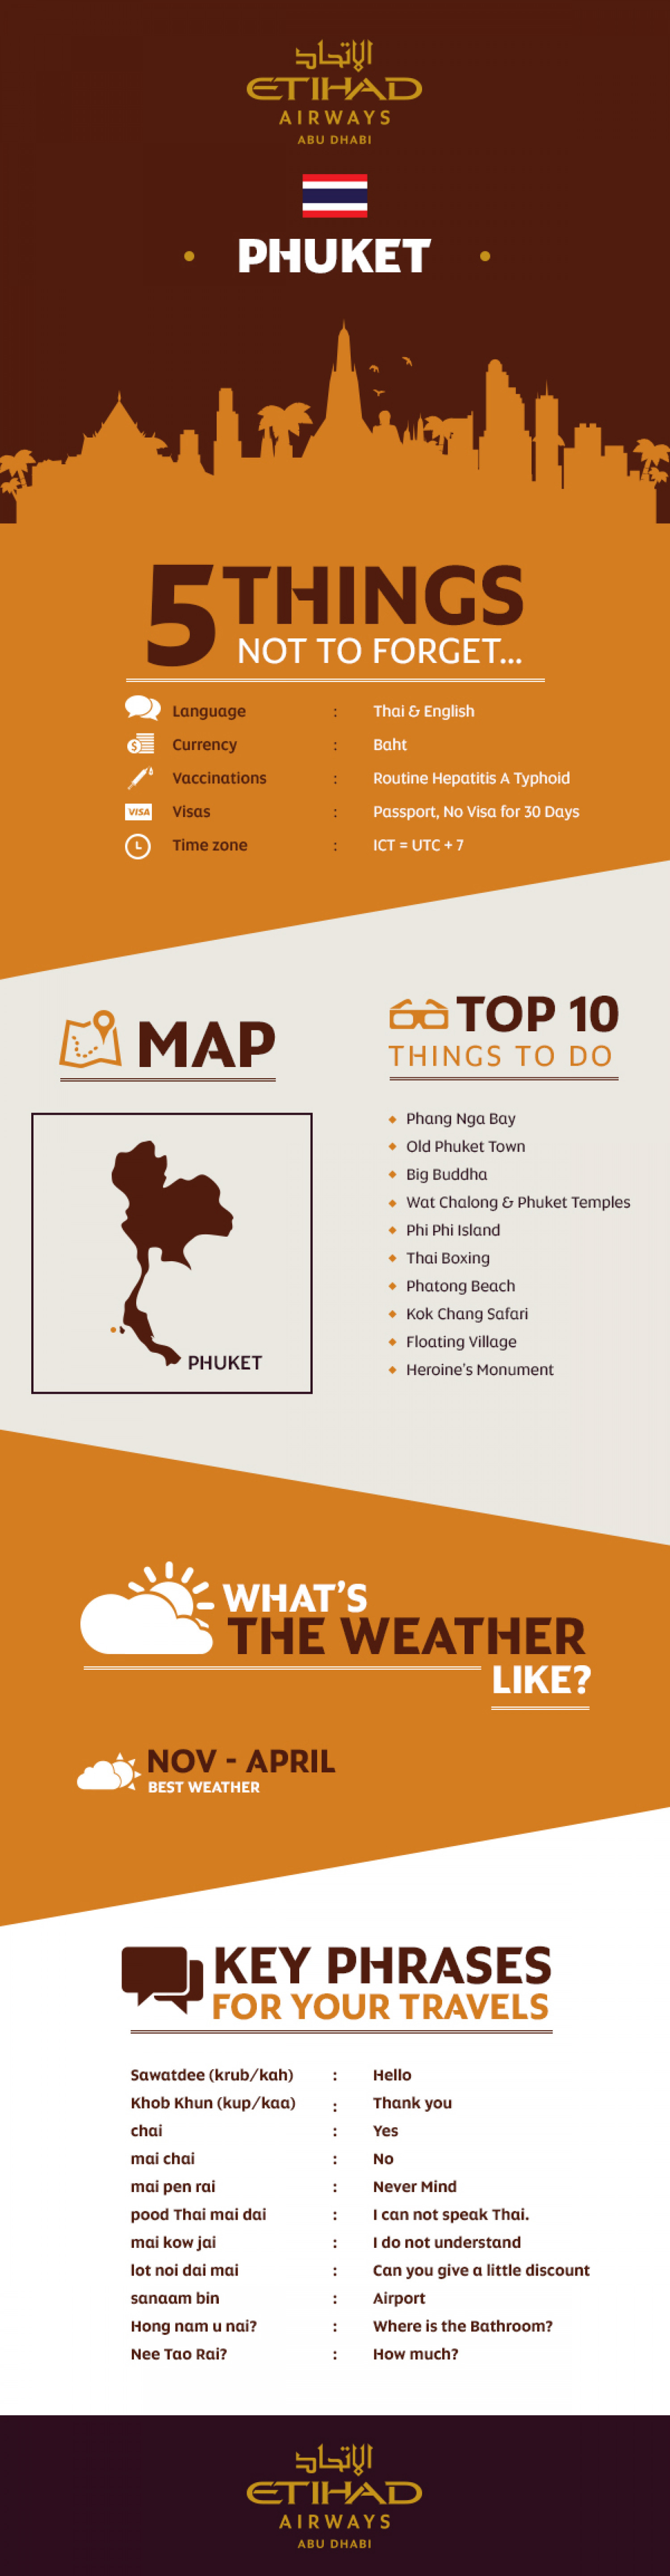 Etihad's guide to travelling to Phuket Infographic